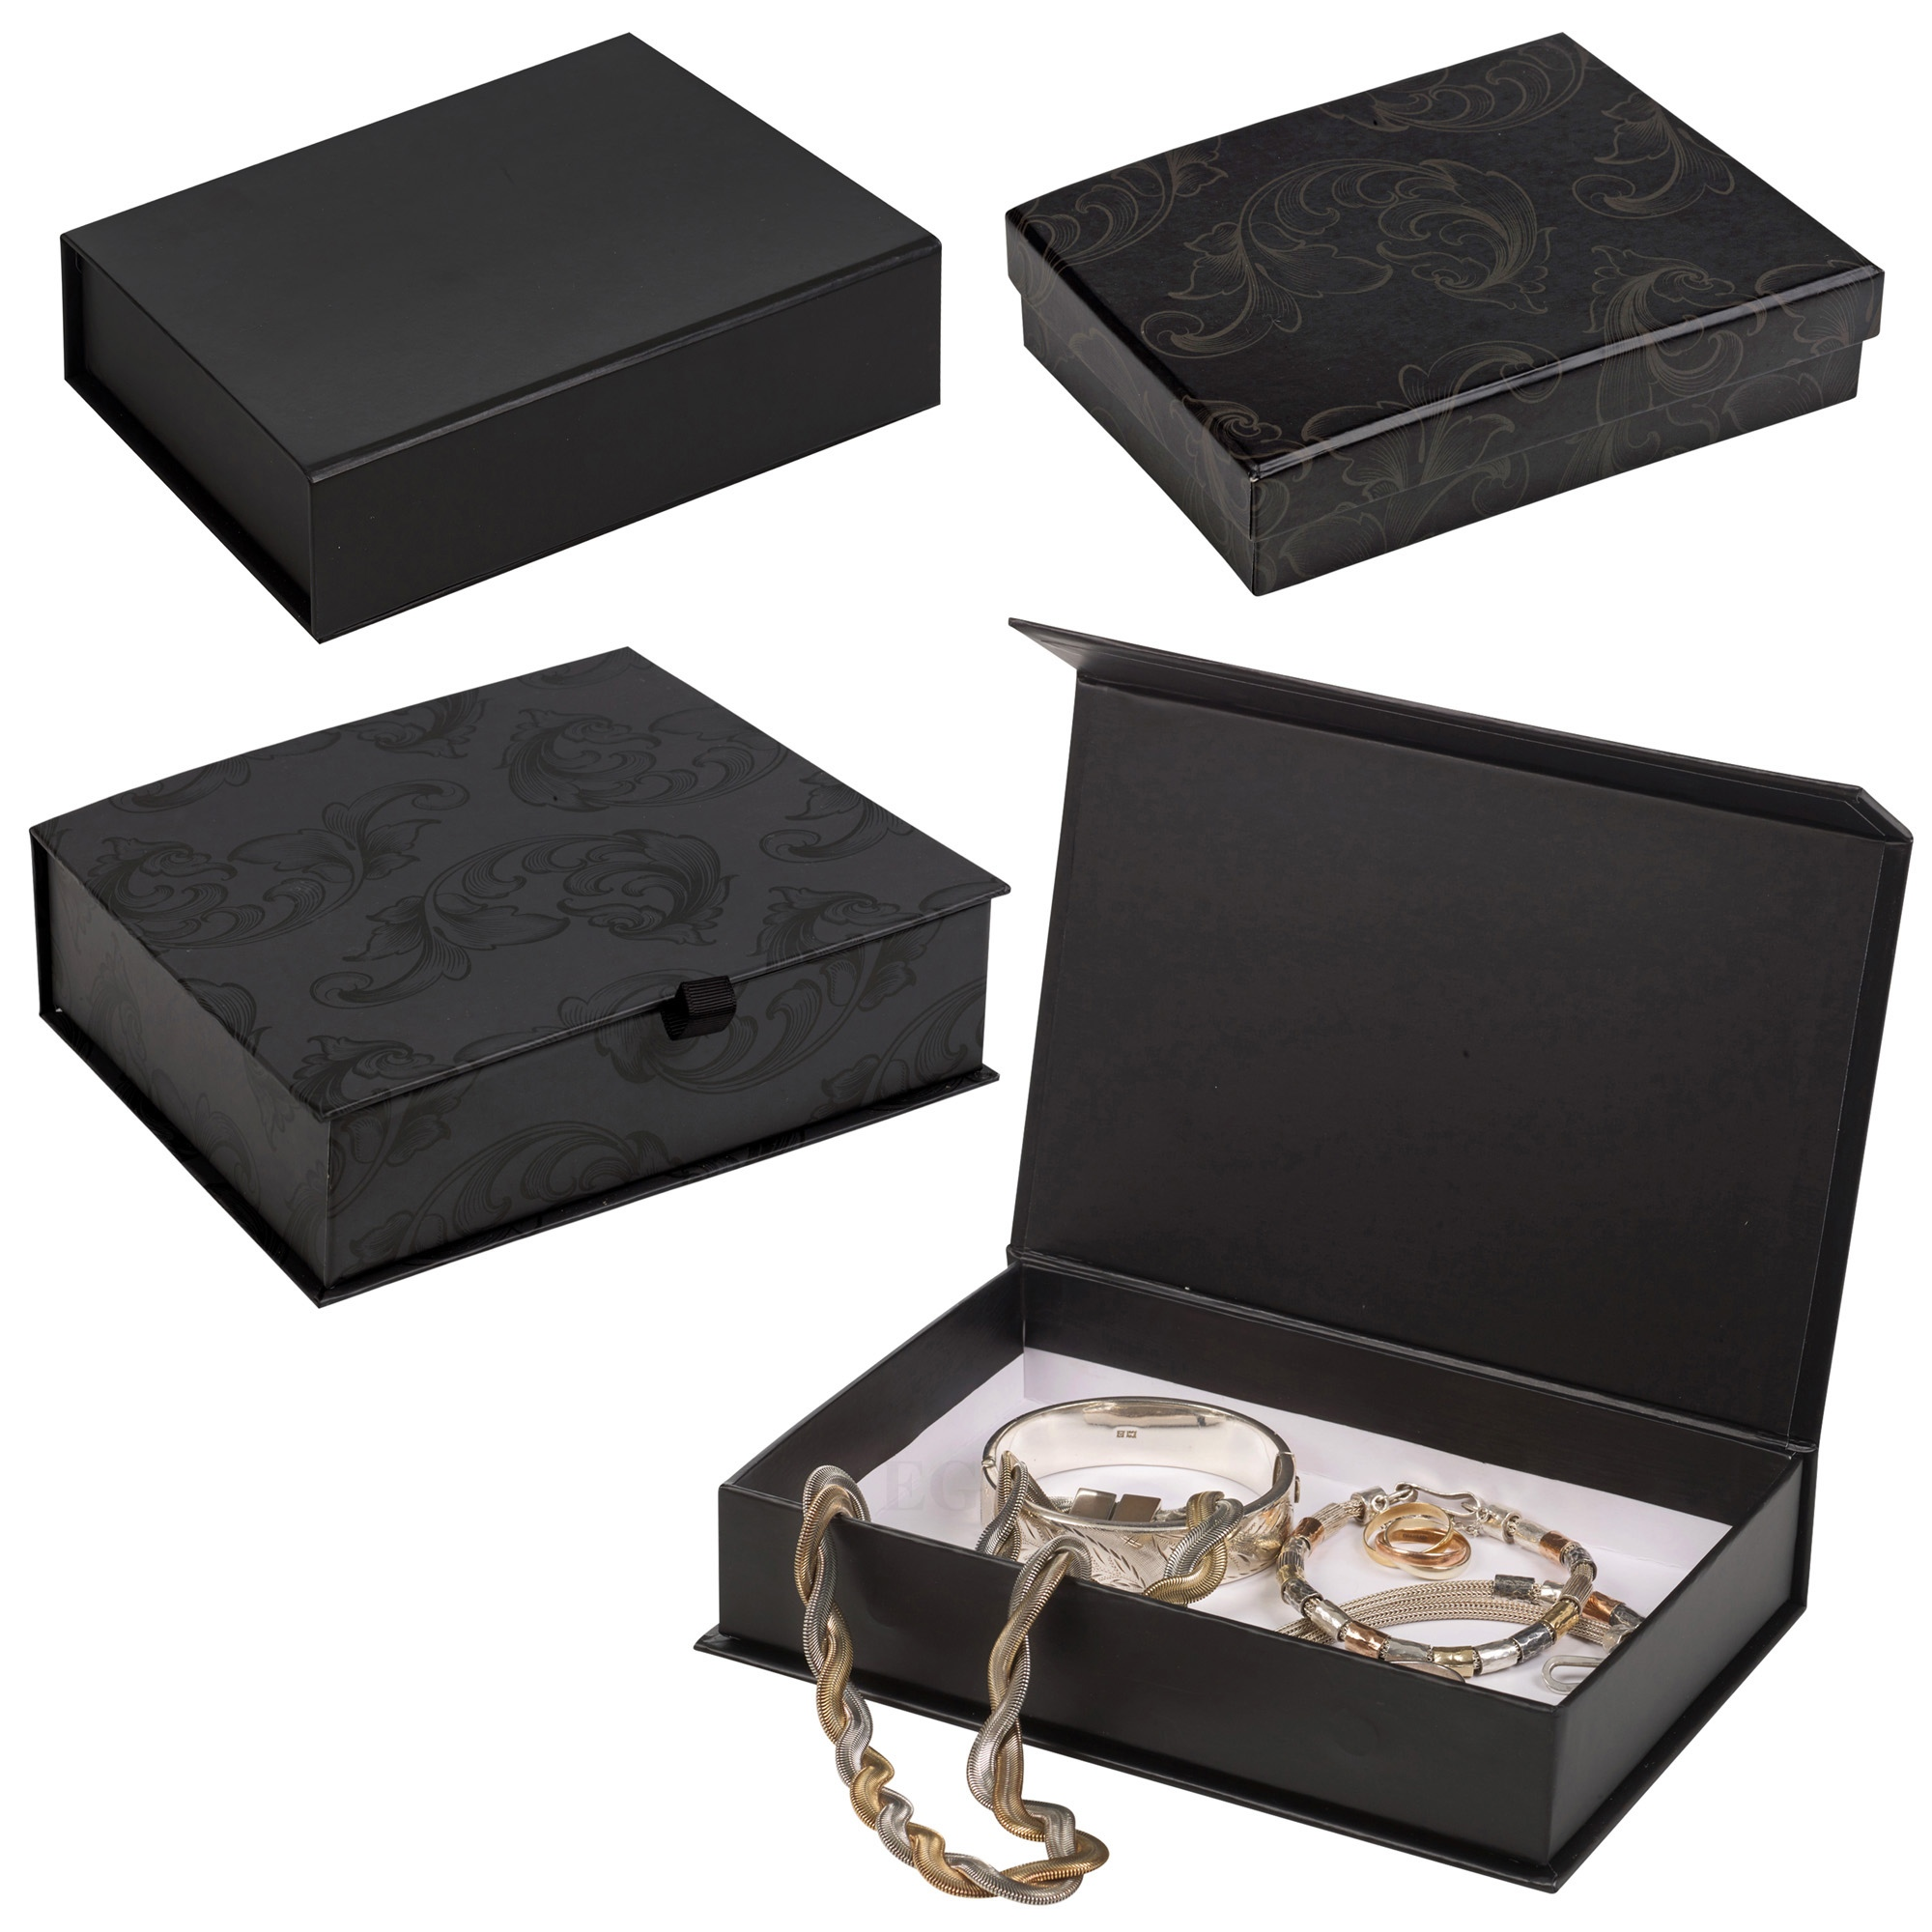 Details about 6 Large Luxury Gift Boxes Present Presentation Hinged or Removable Lid Jewellery  sc 1 st  eBay & 6 Large Luxury Gift Boxes Present Presentation Hinged or Removable ...